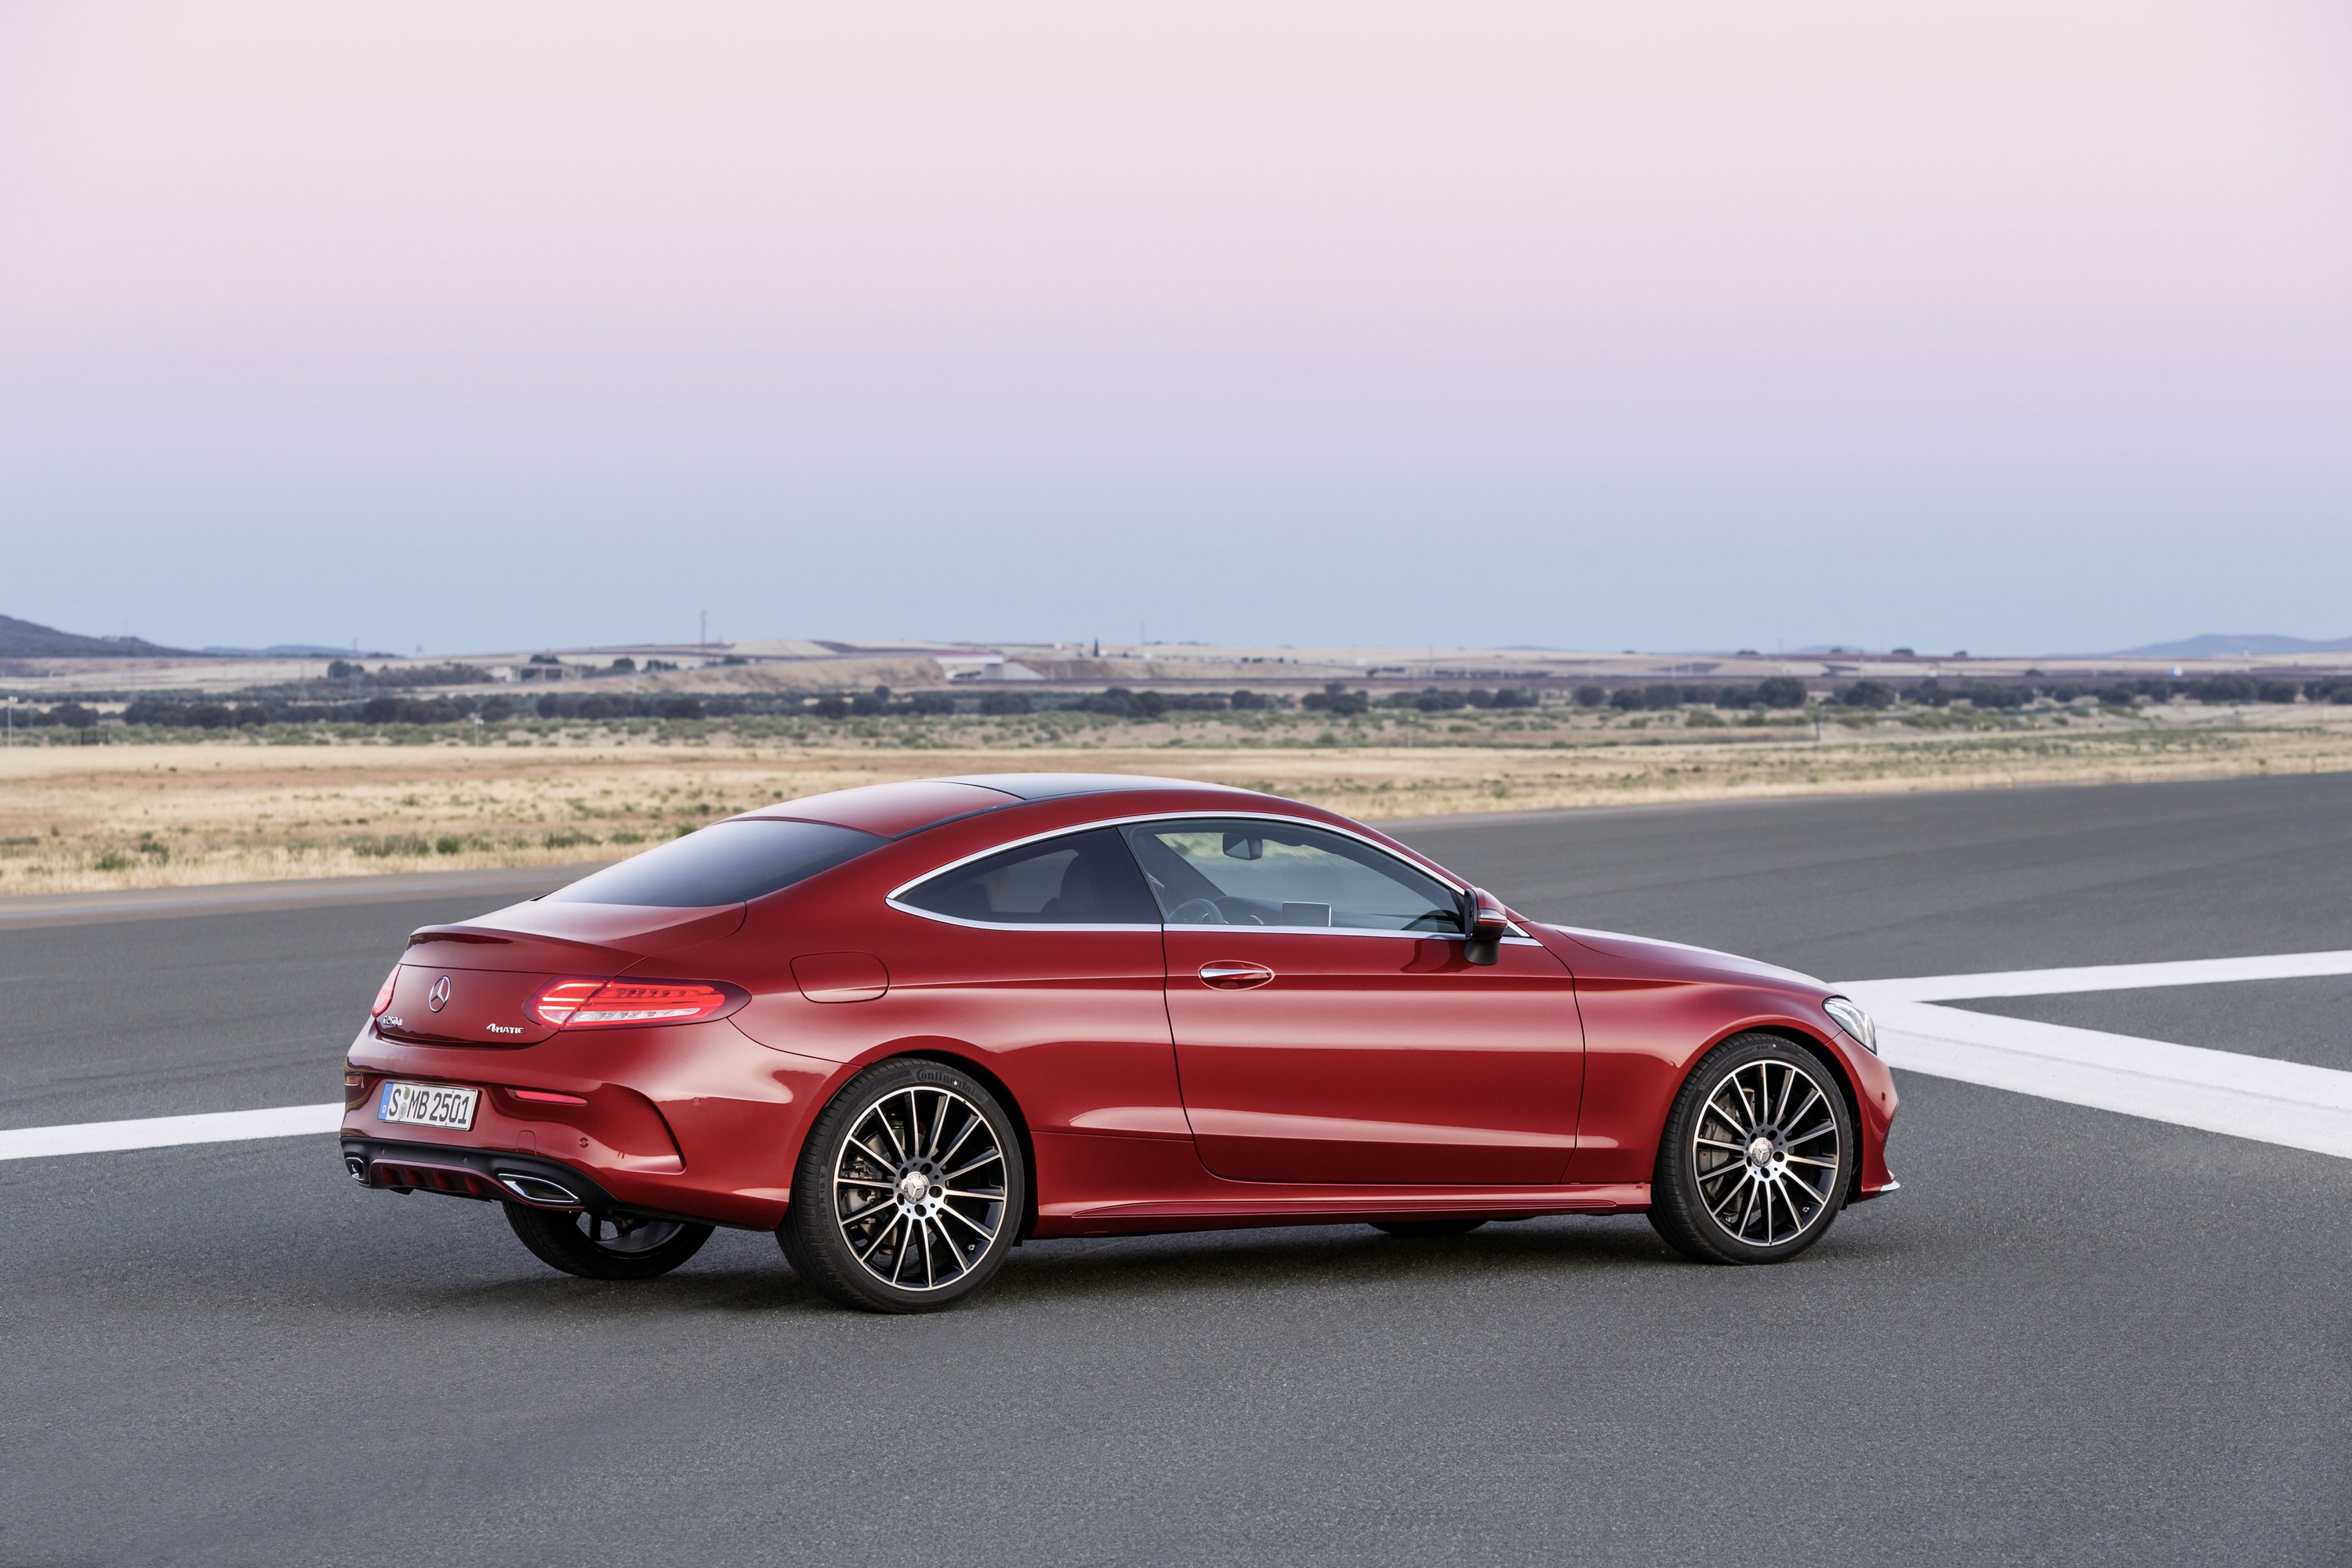 Mercedes benz redesigns c class coupe for 2016 - Mercedes c class coupe used ...